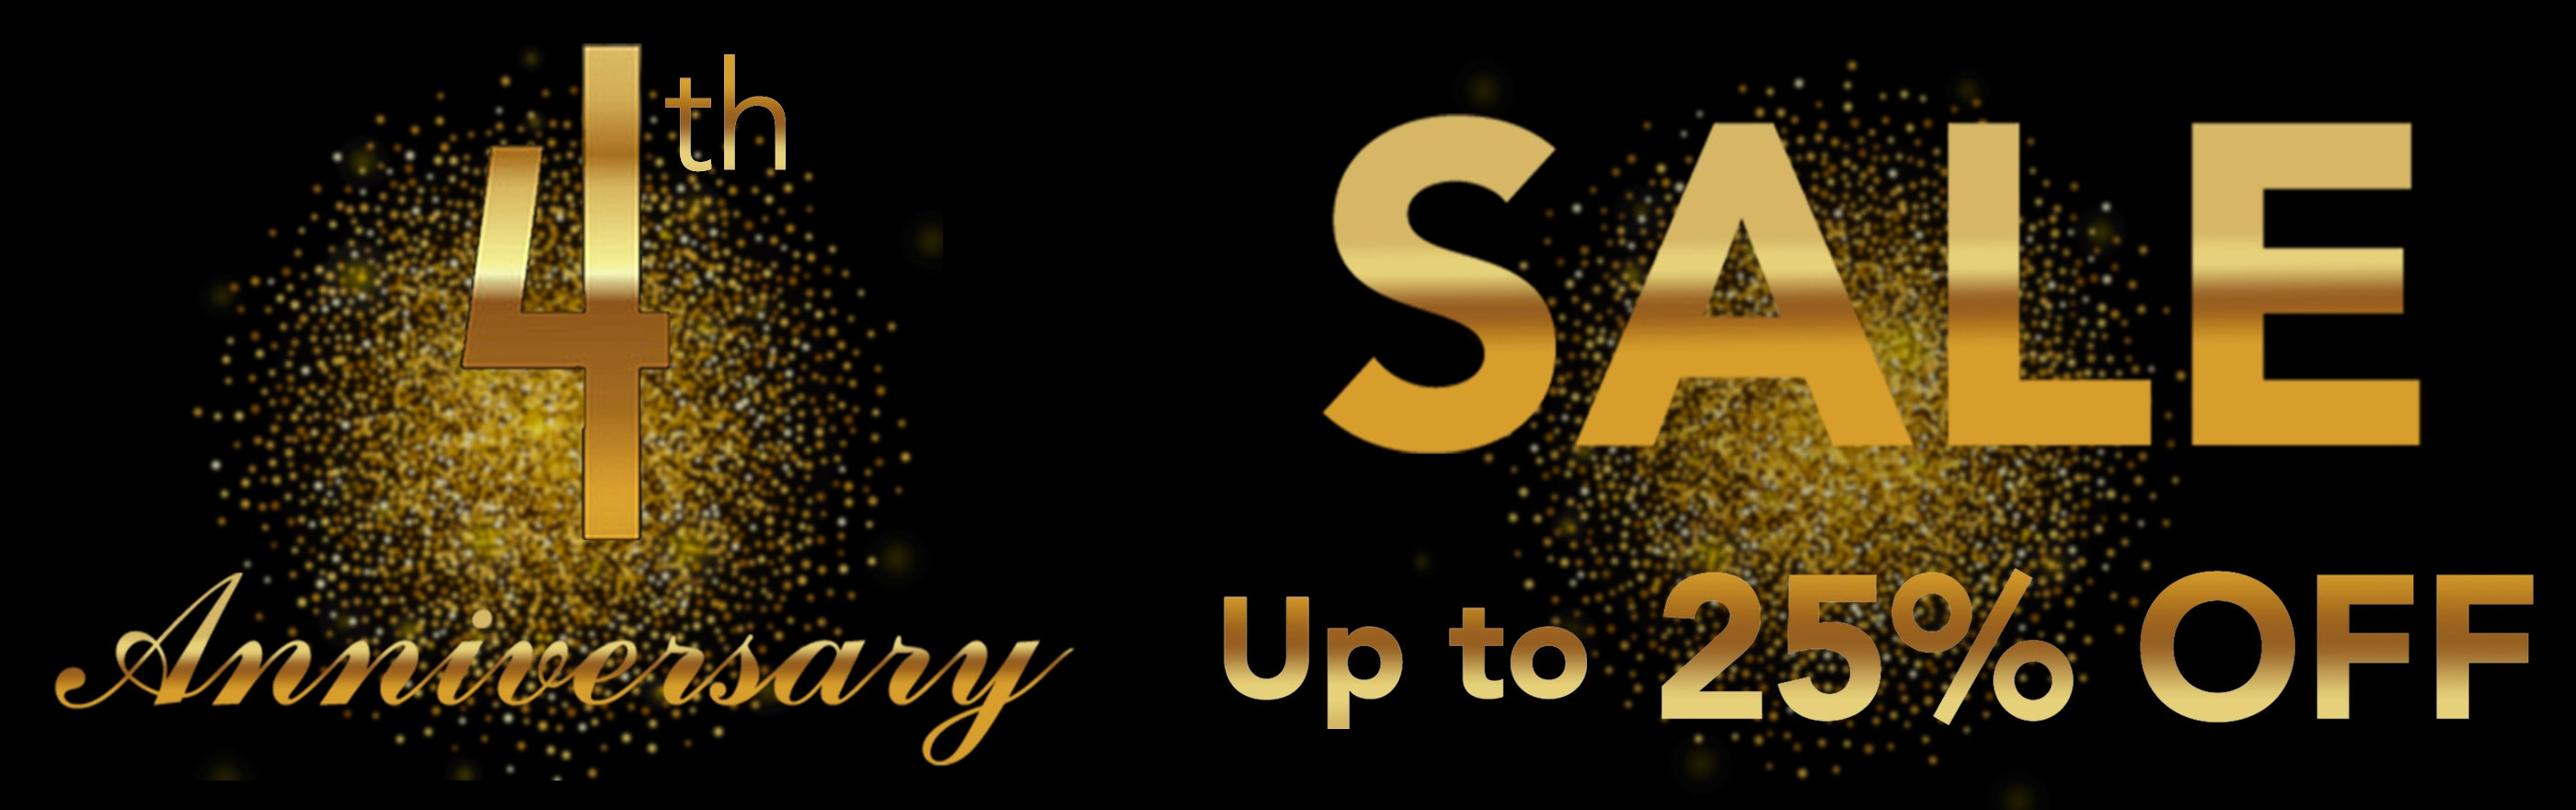 Buy Anniversary wines collection Online - To 25% OFF